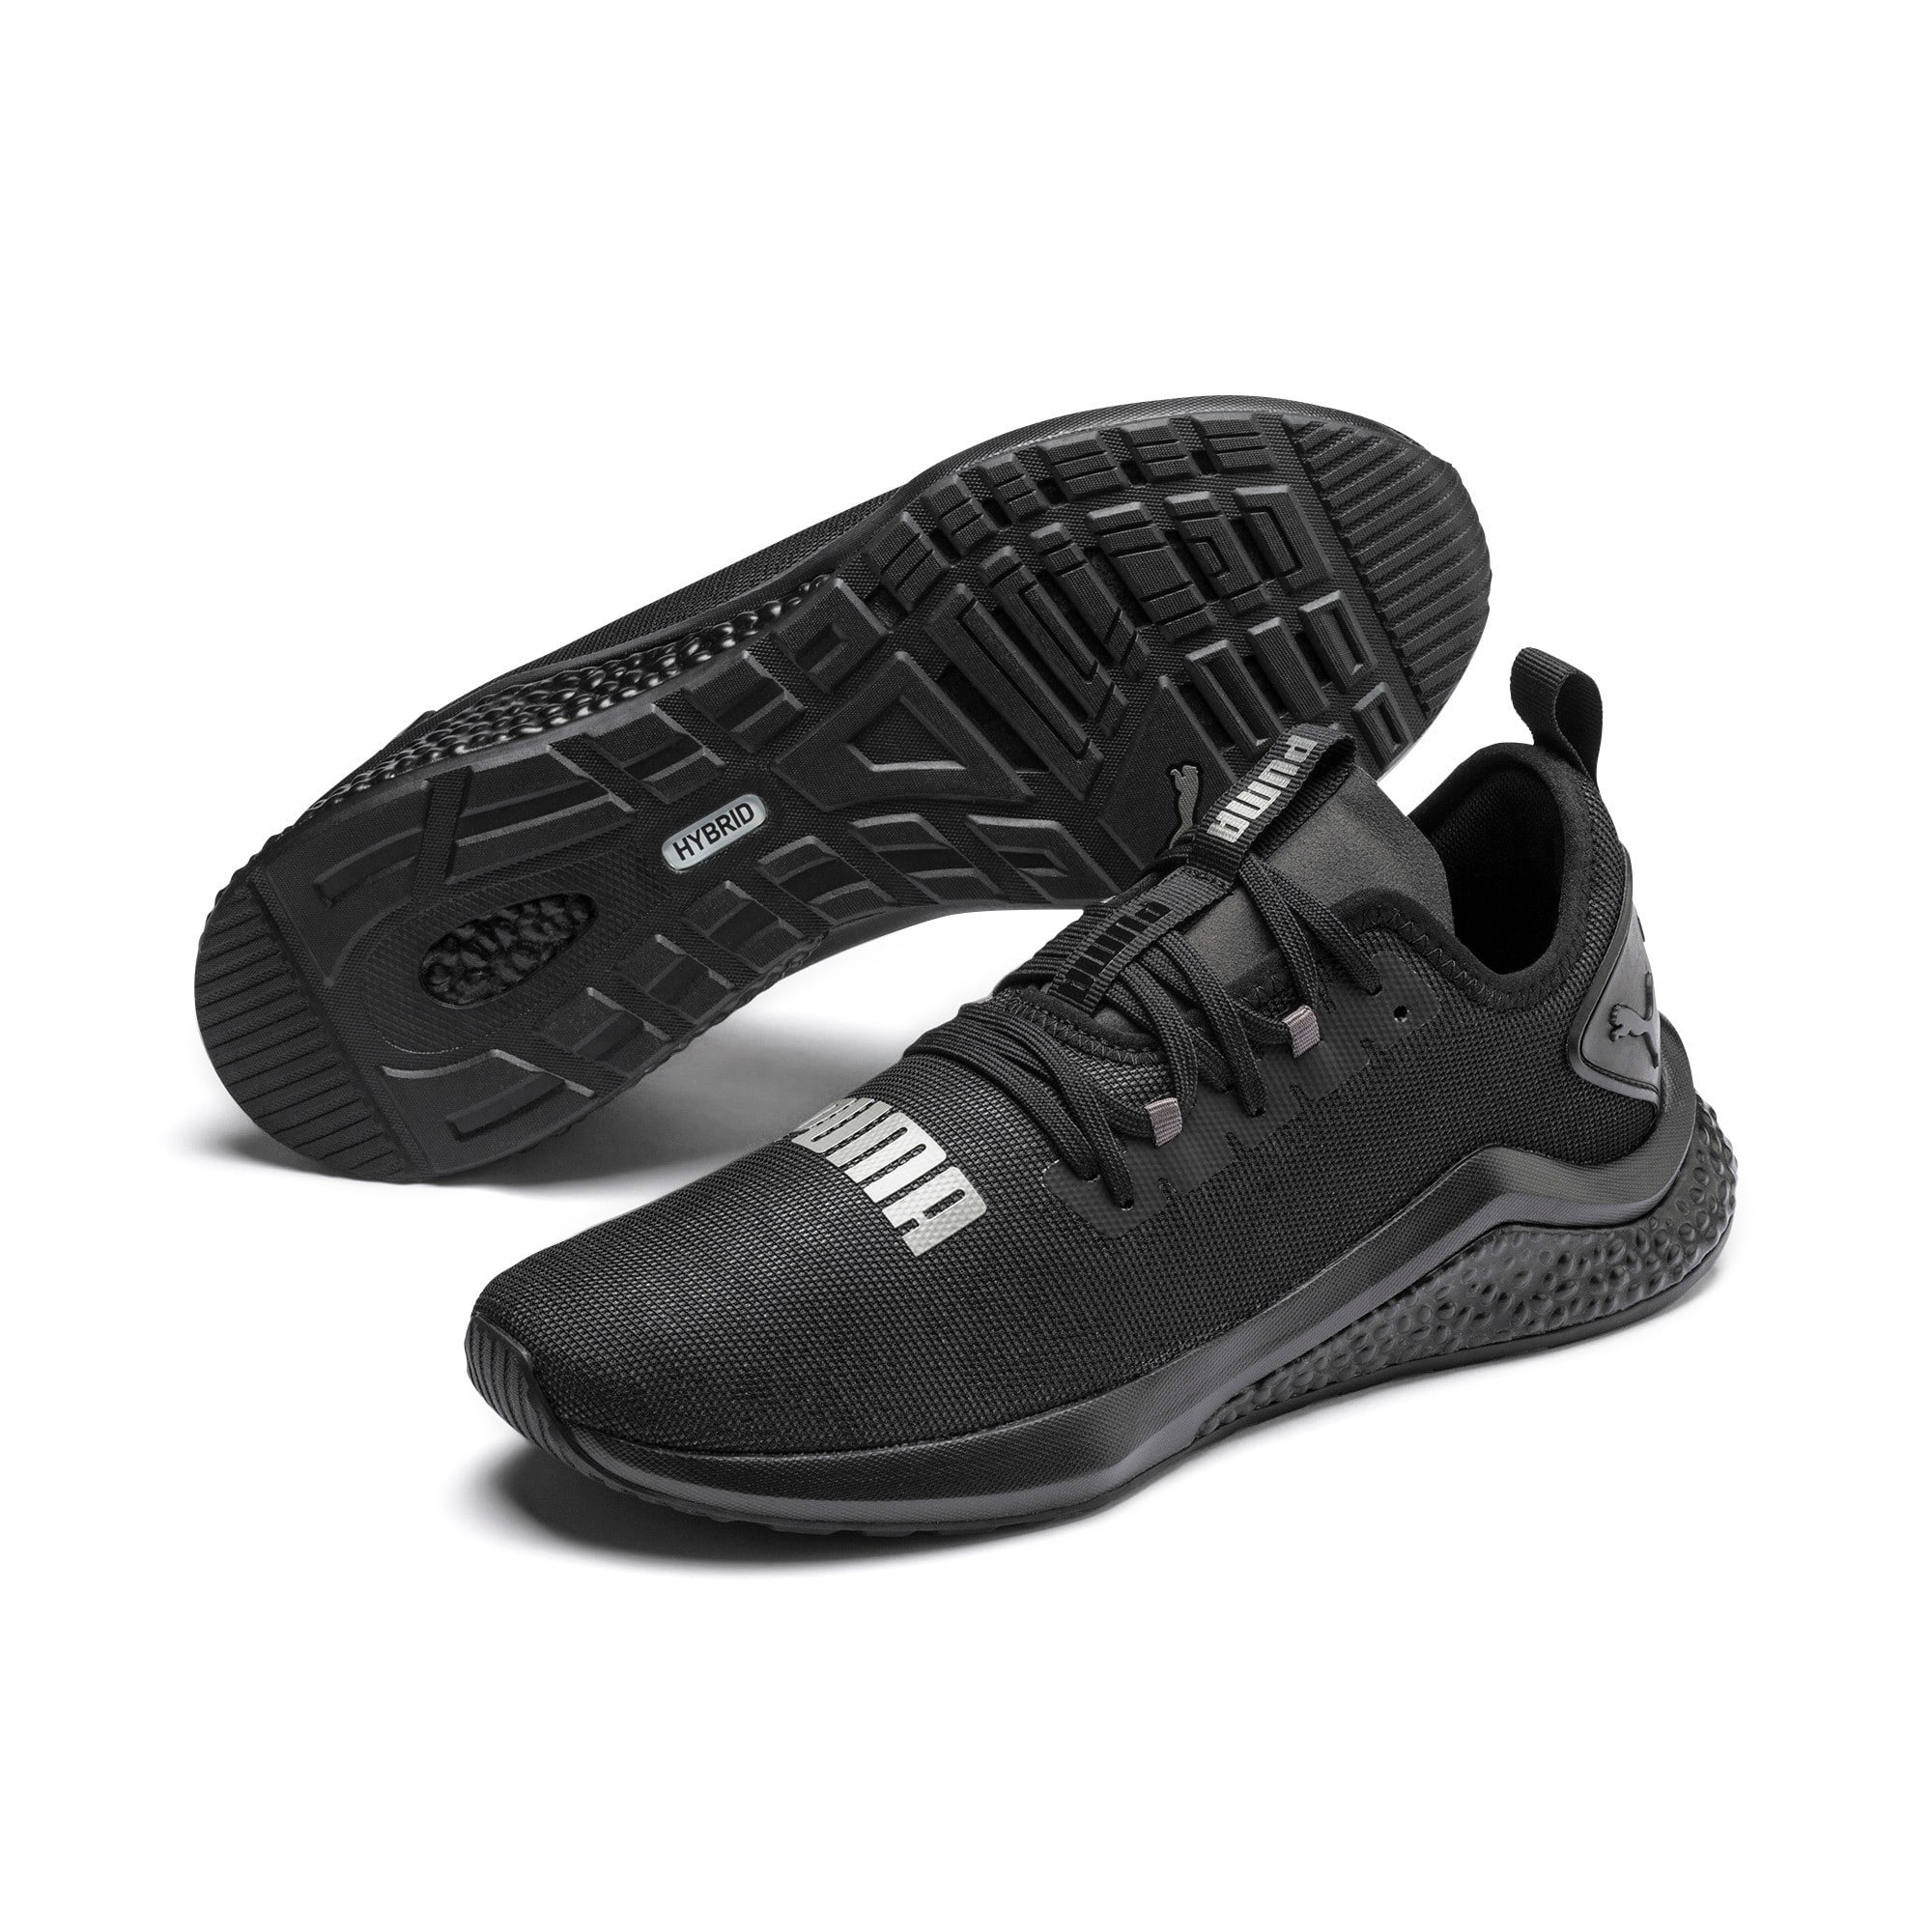 Thumbnail 3 of Chaussure de course HYBRID NX Rave pour homme, Puma Black, medium